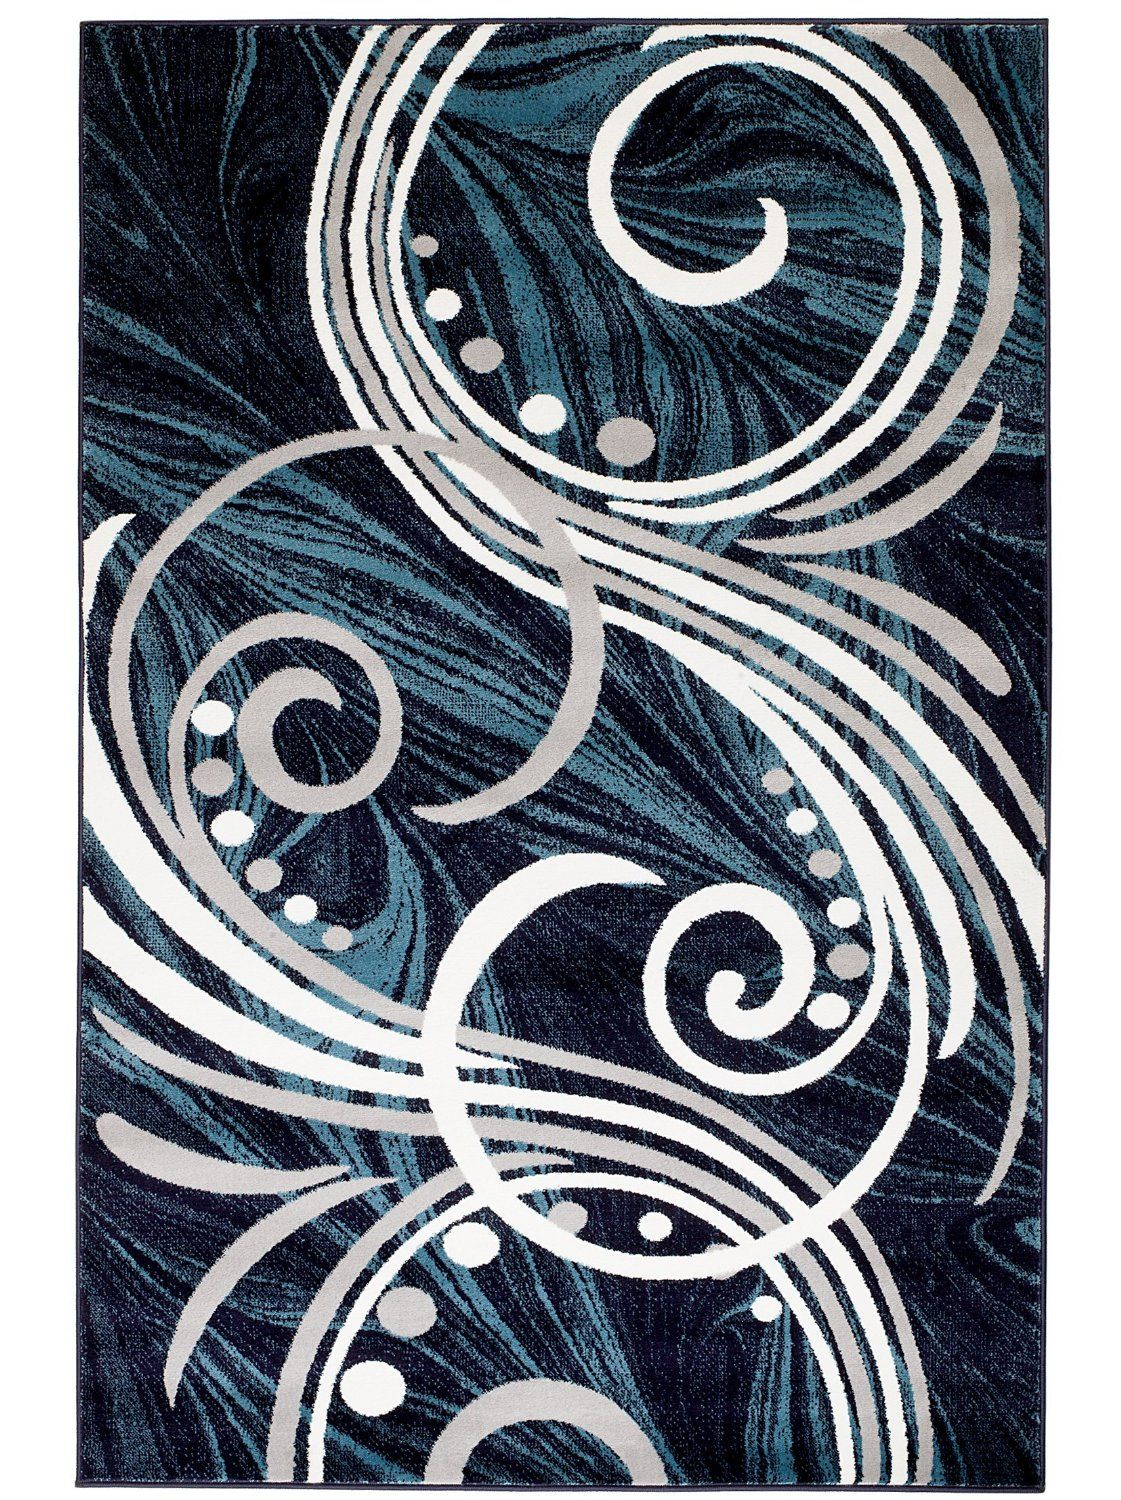 New summit elite 61 blue grey white swirl scrolls transitional swirl area rug modern abstract rug many sizes available 2x3 2x7 4x6 5x7 8x11 22 inch x